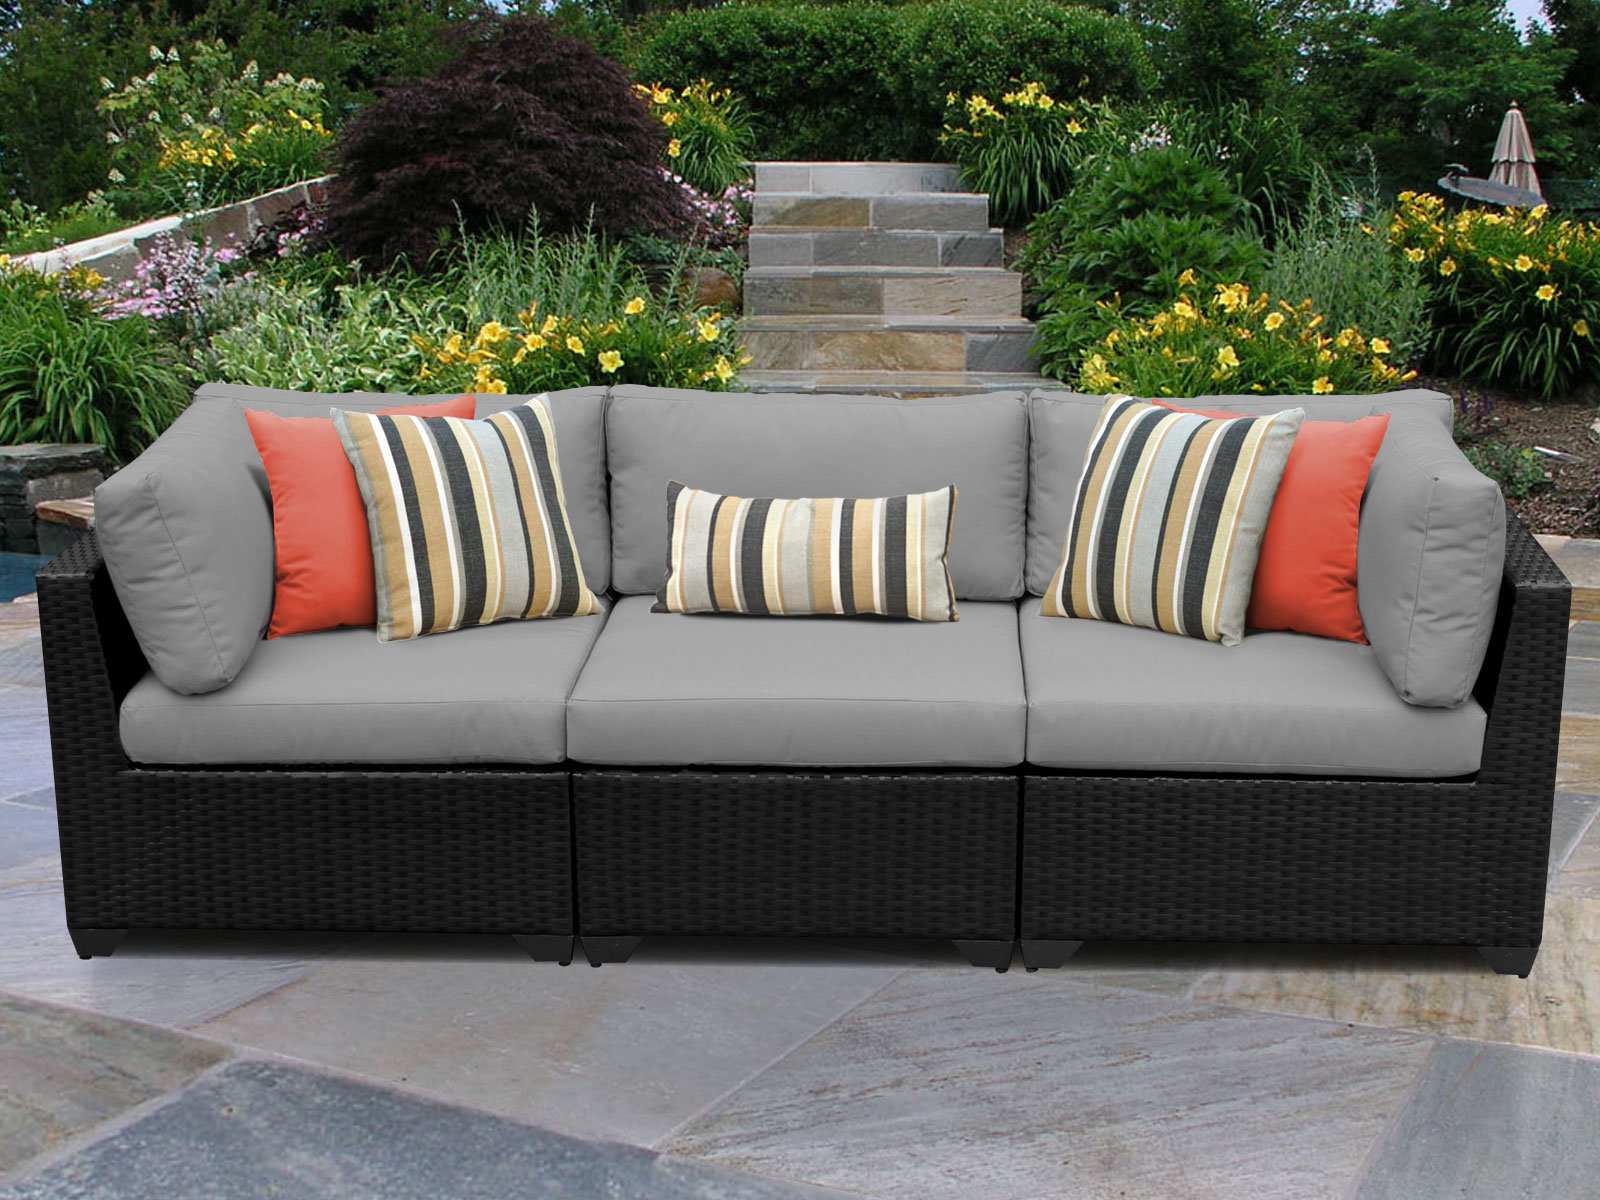 Camak Patio Sofa With Cushions Intended For 2020 Camak Patio Loveseats With Cushions (View 5 of 20)